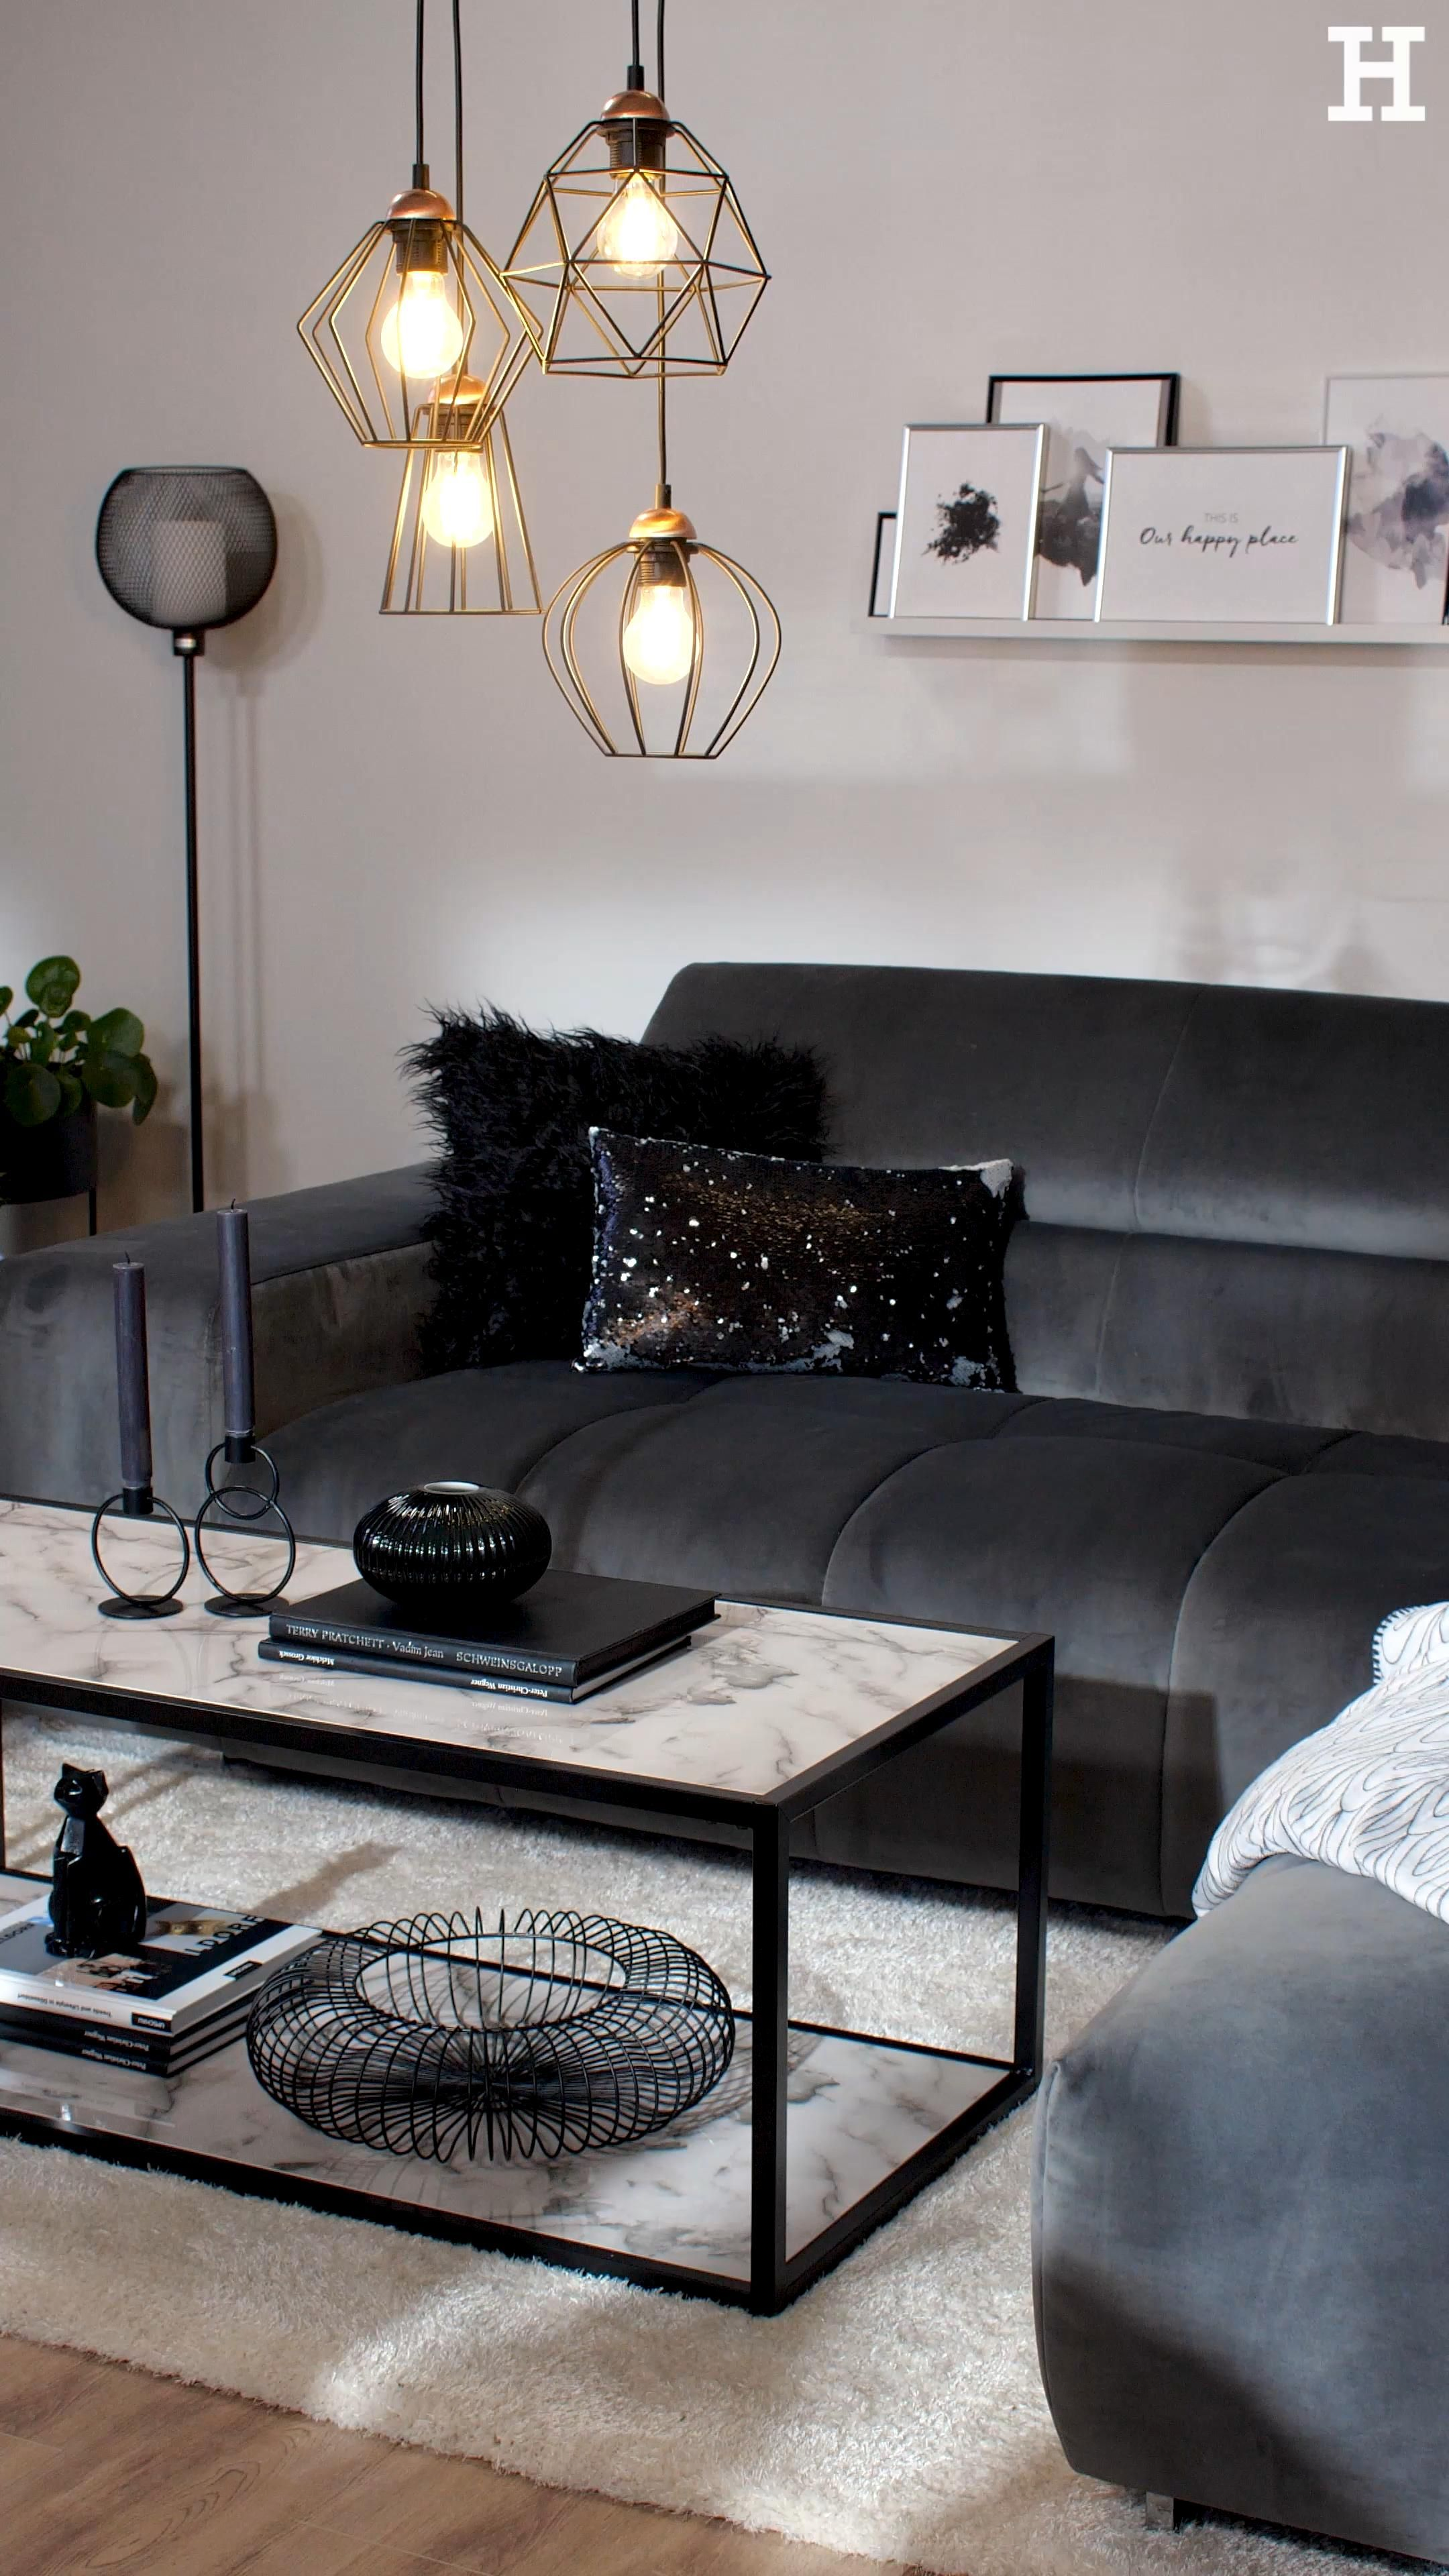 Photo of Luminaires with filigree metal struts in black fit seamlessly into the monochrome look